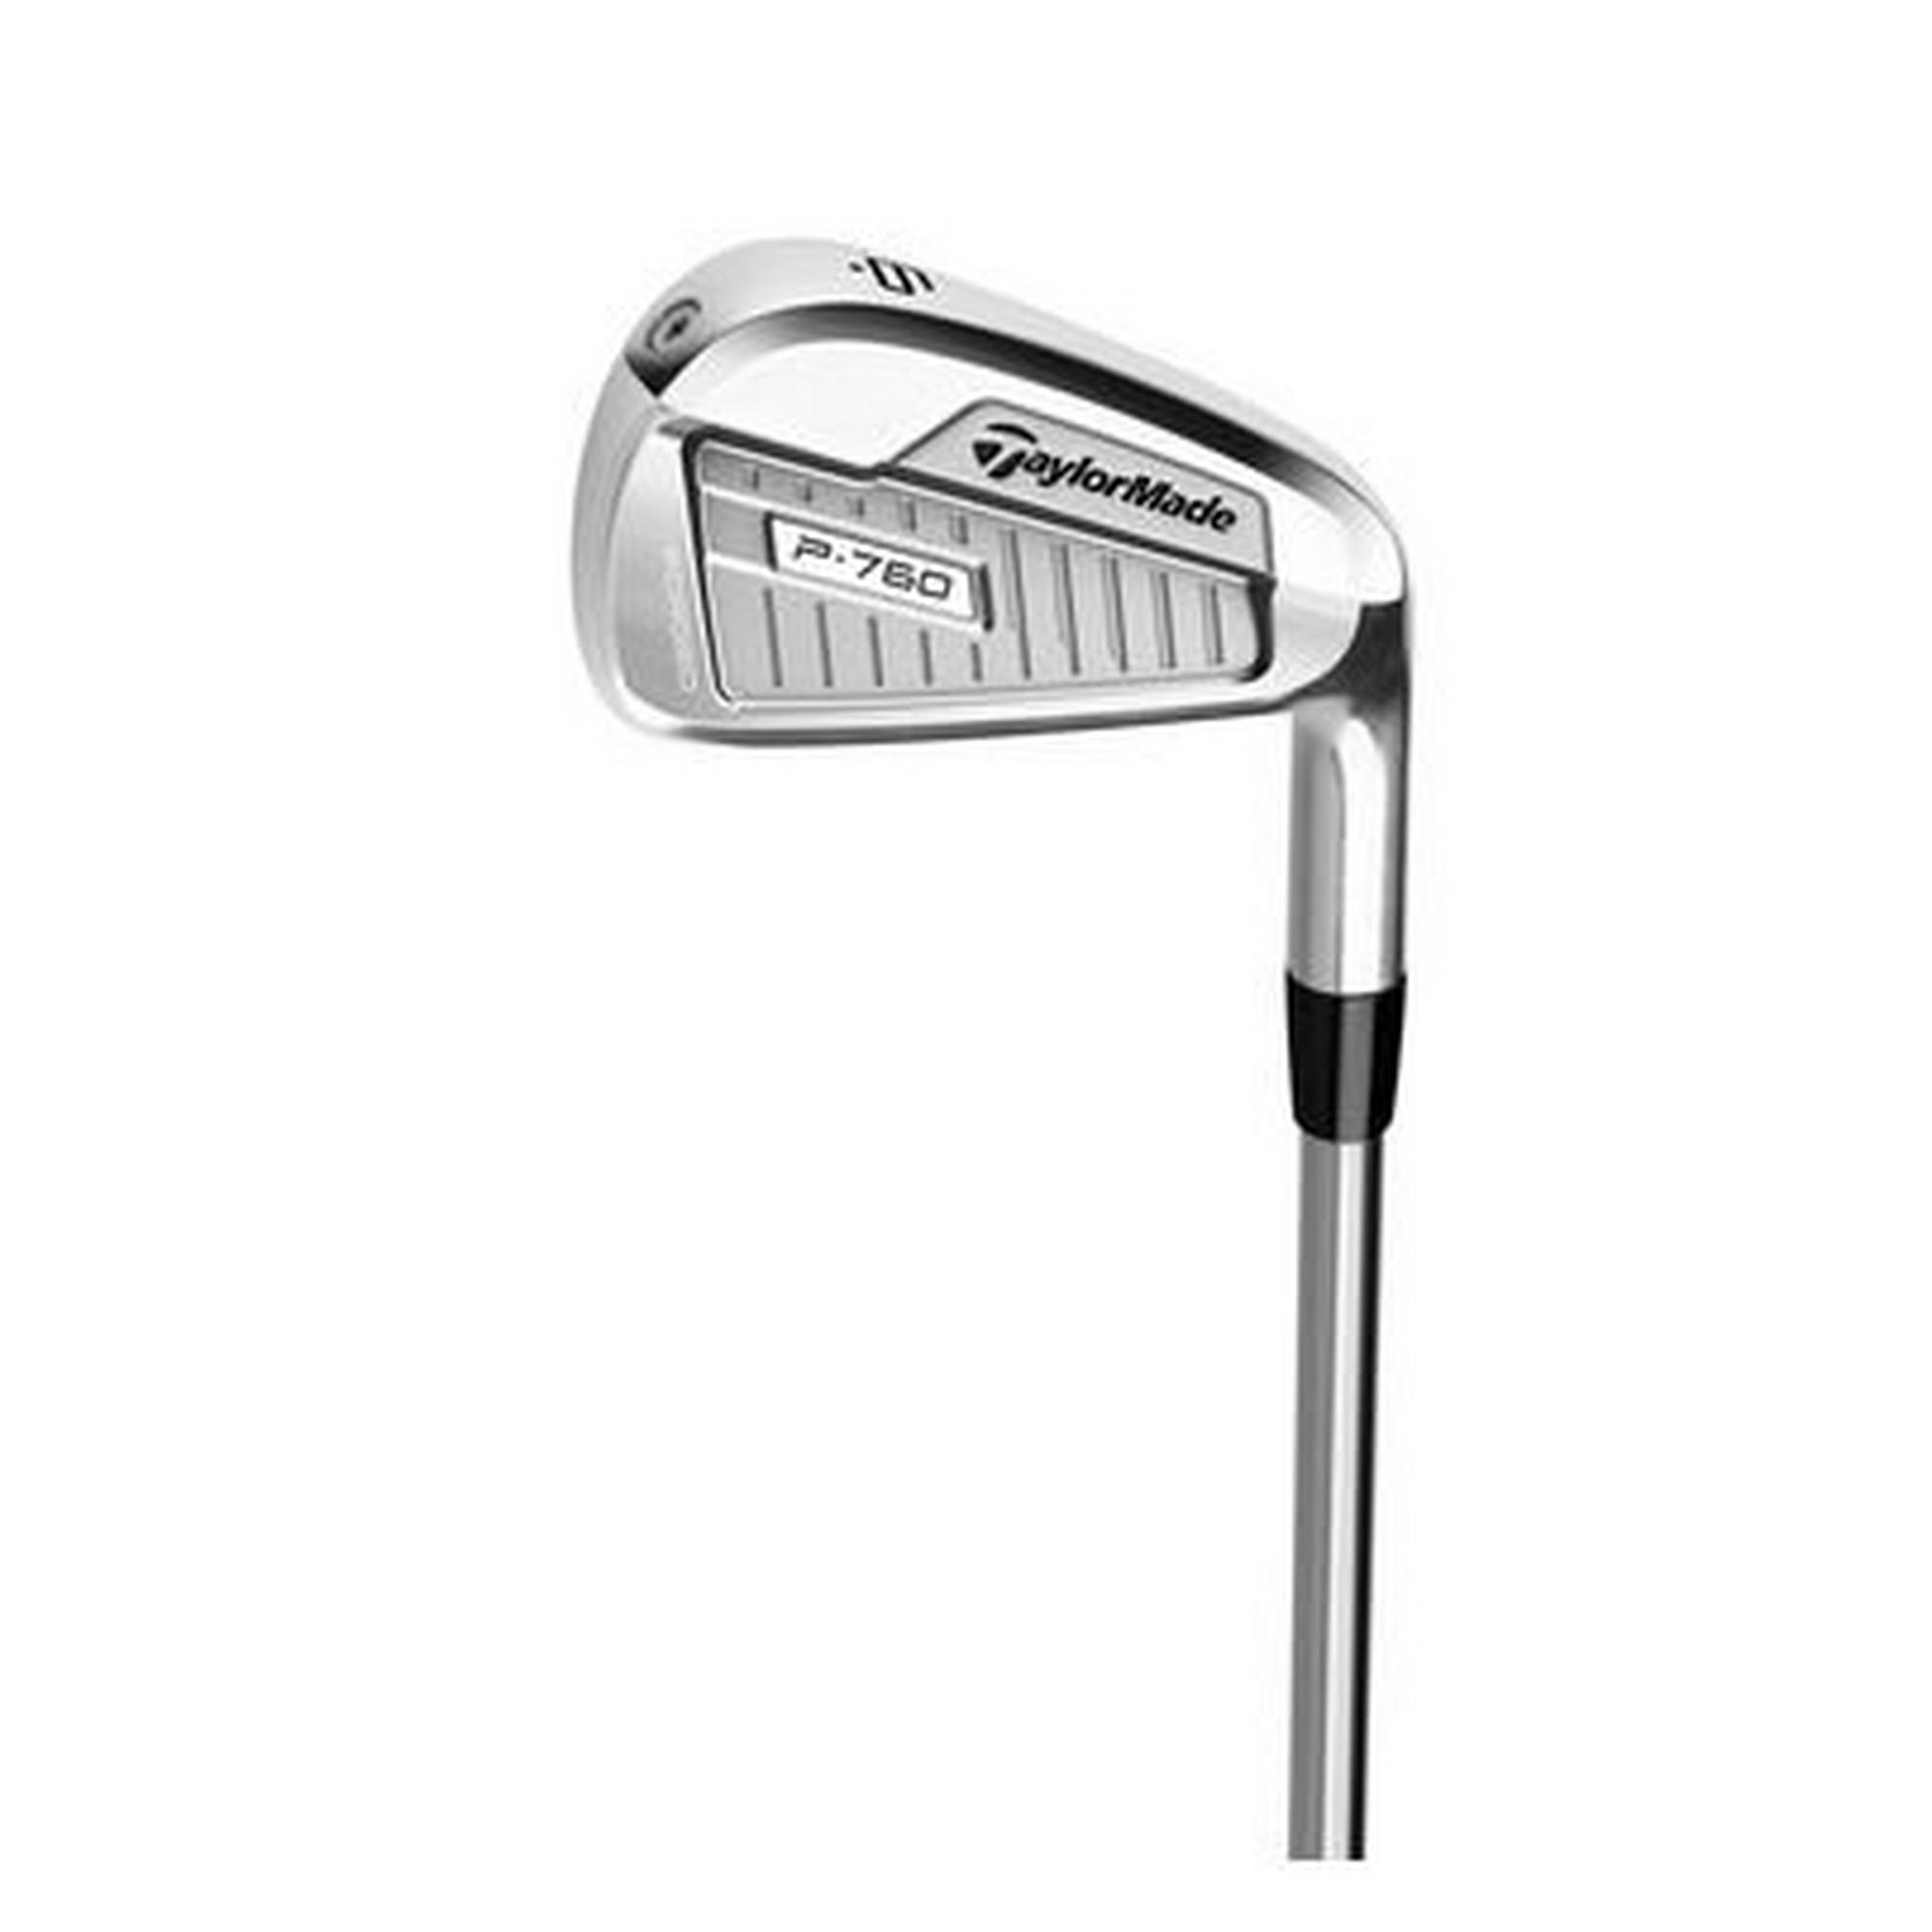 P760 4-PW Iron Set with Steel Shafts